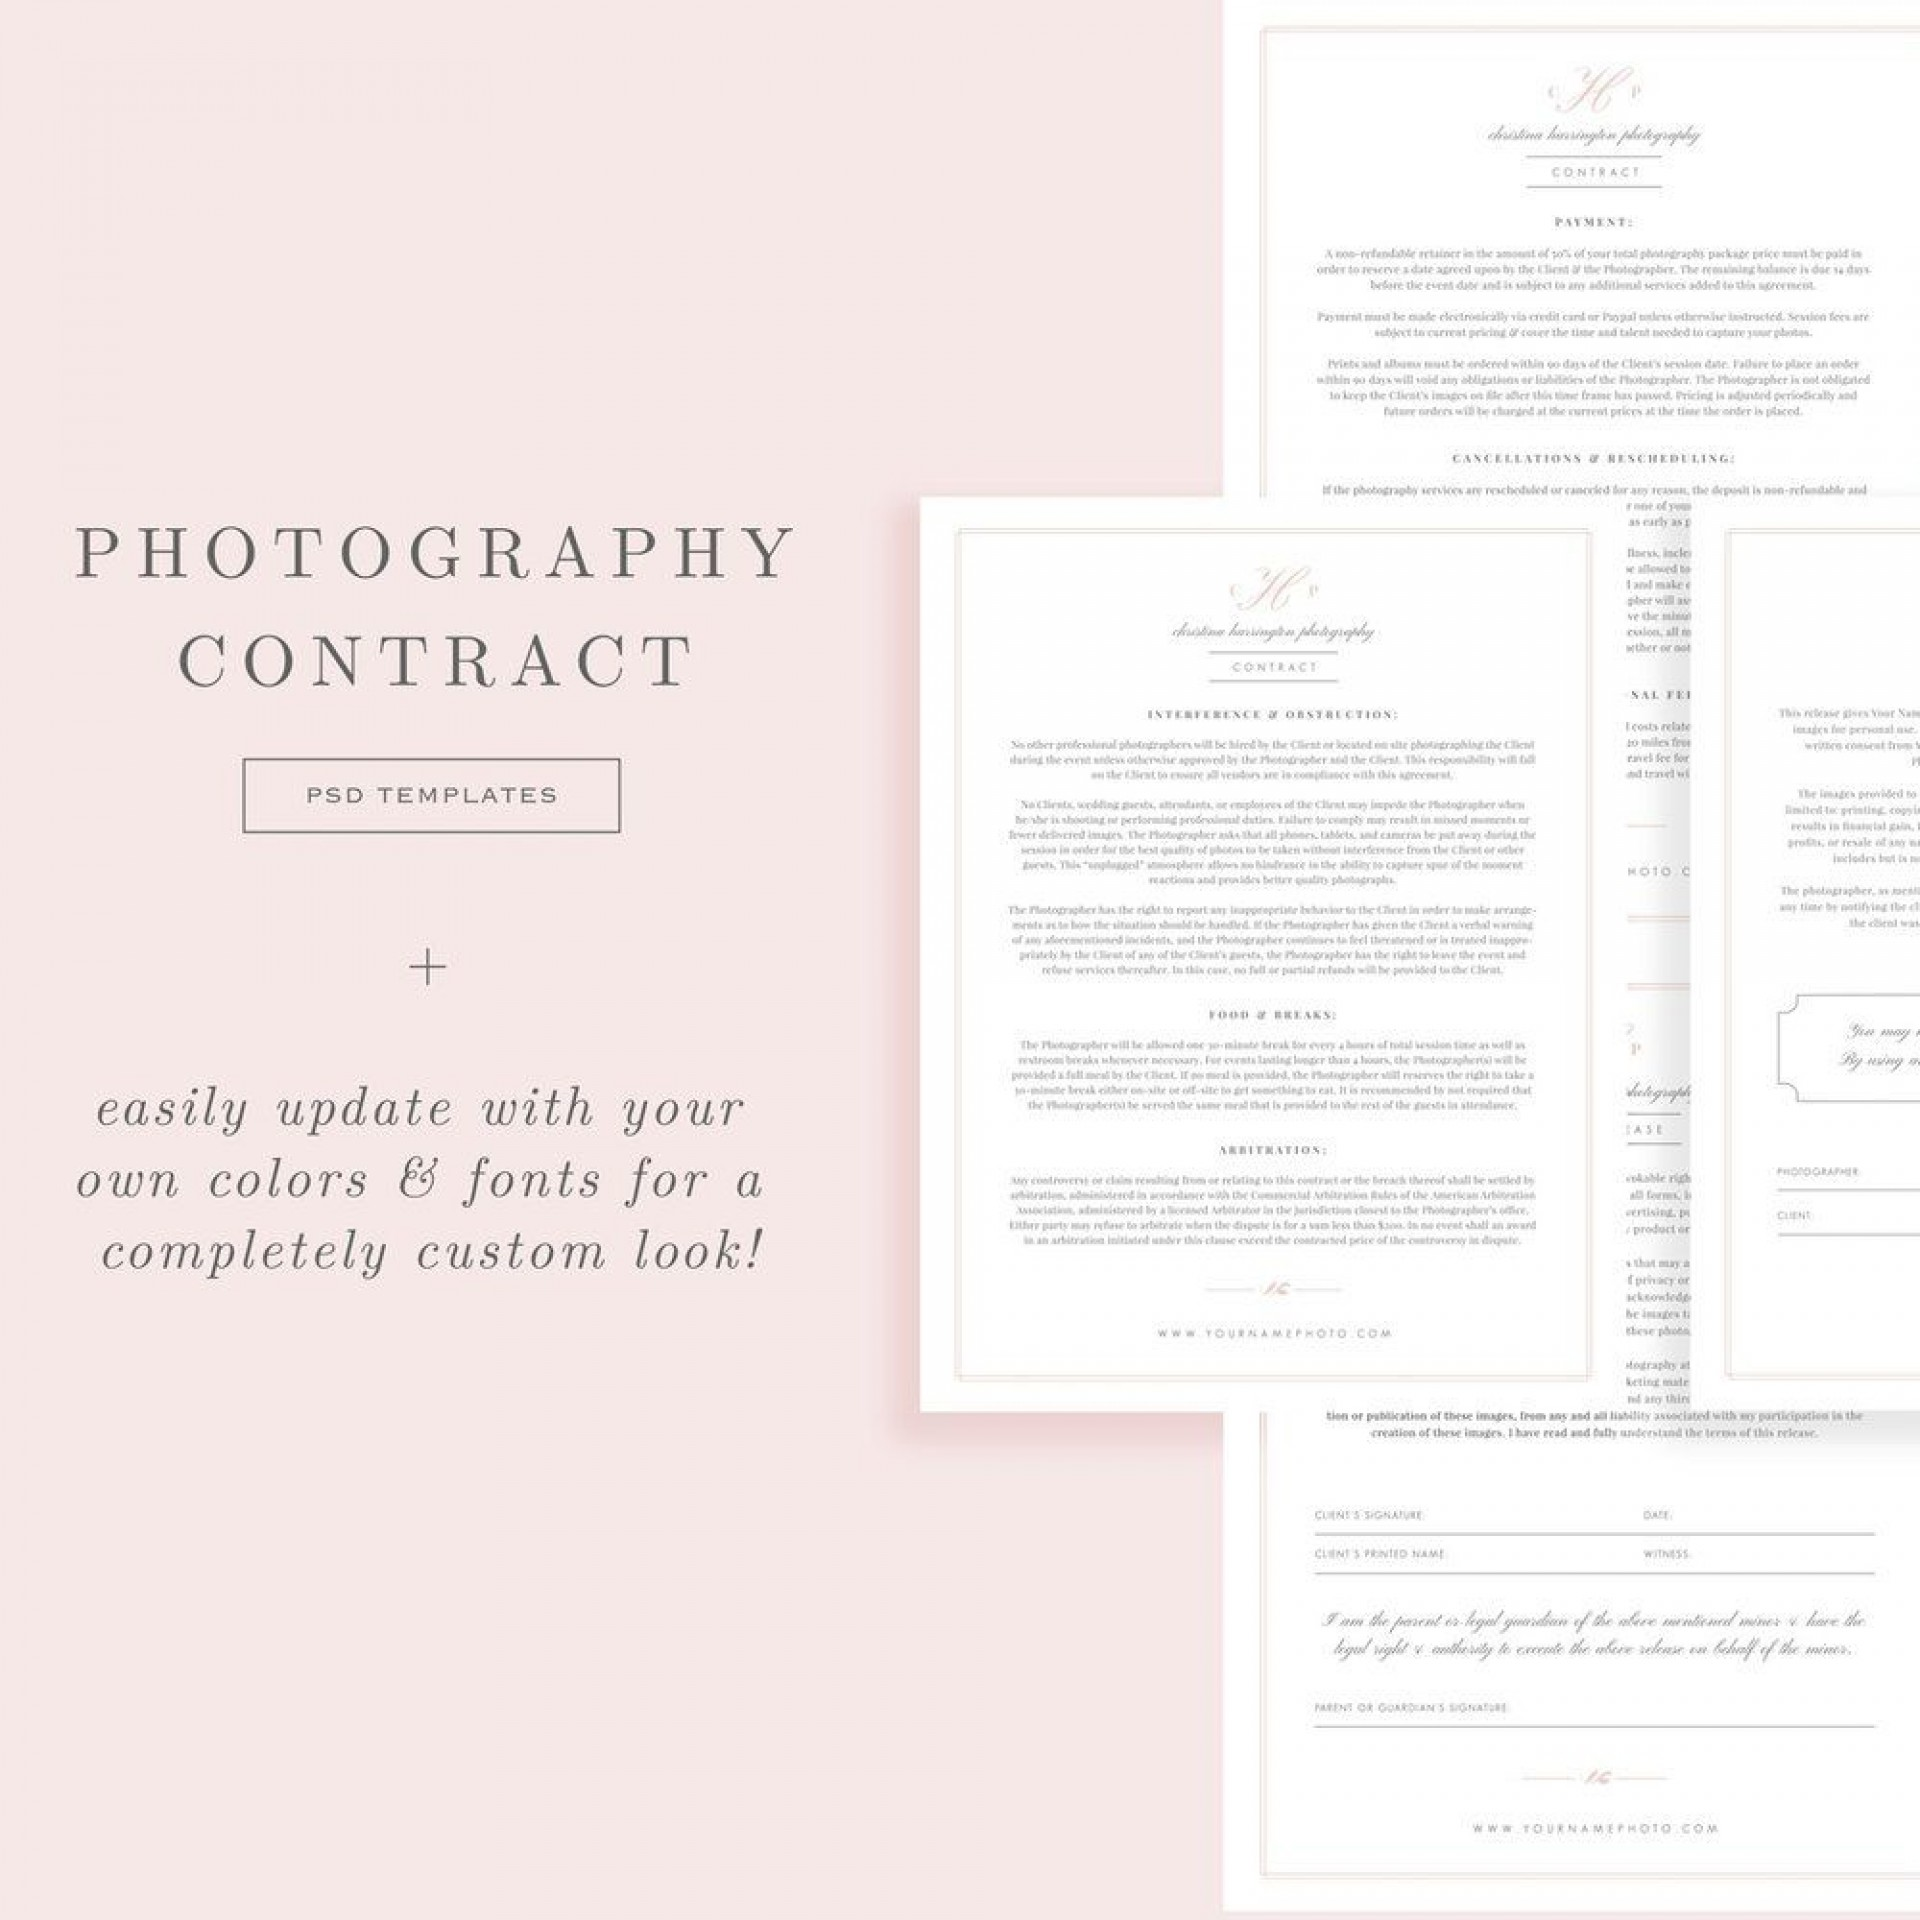 005 Shocking Wedding Photography Contract Template Canada Image 1920